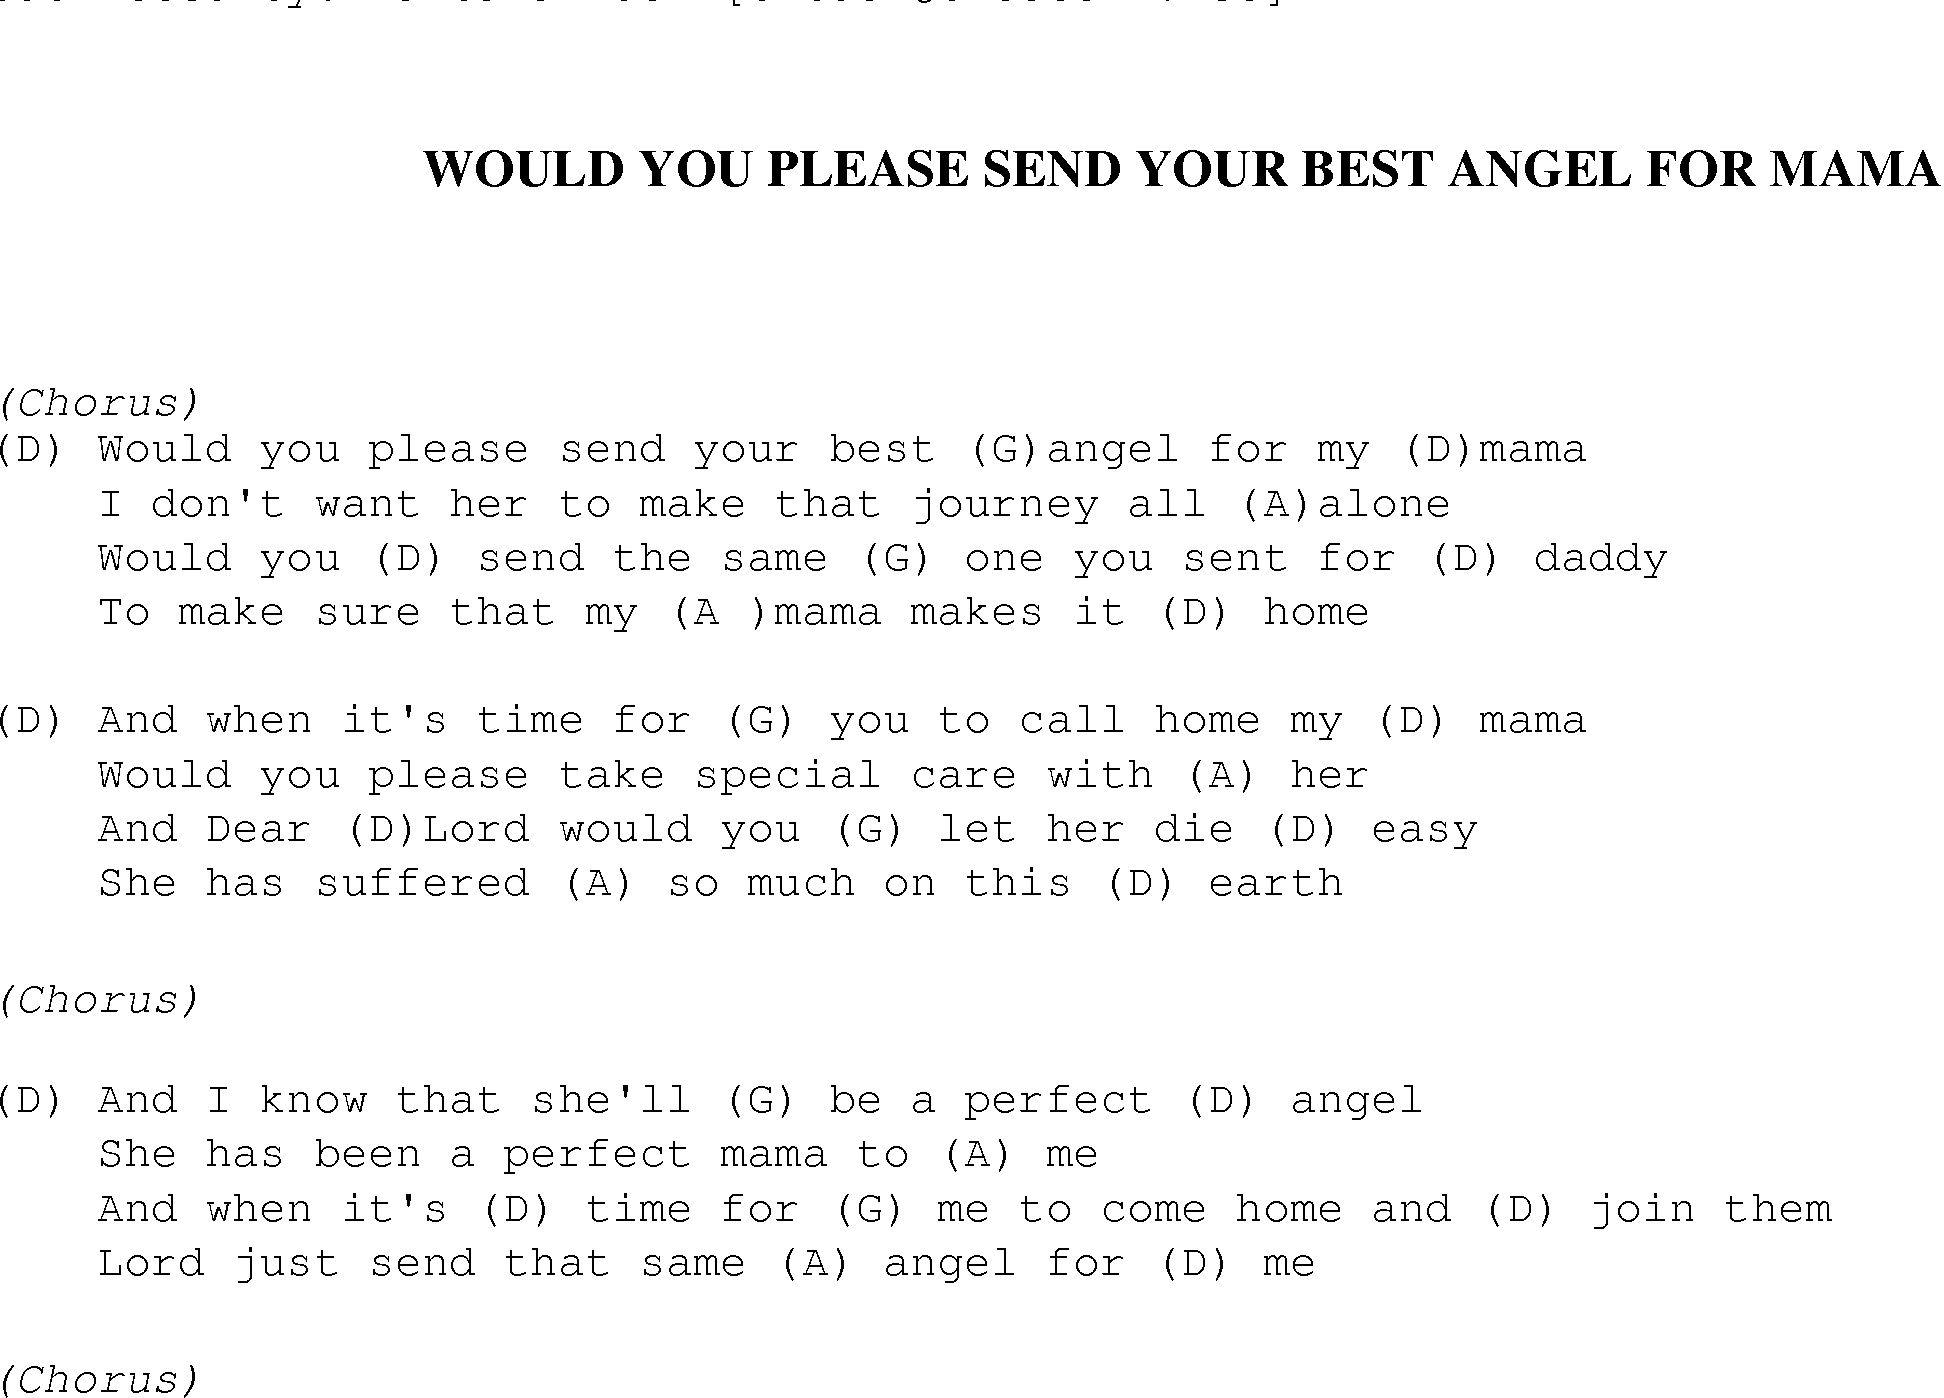 Would you please send your best angel for mama christian gospel gospel song wouldyousendyourbestangel lyrics and chords hexwebz Image collections